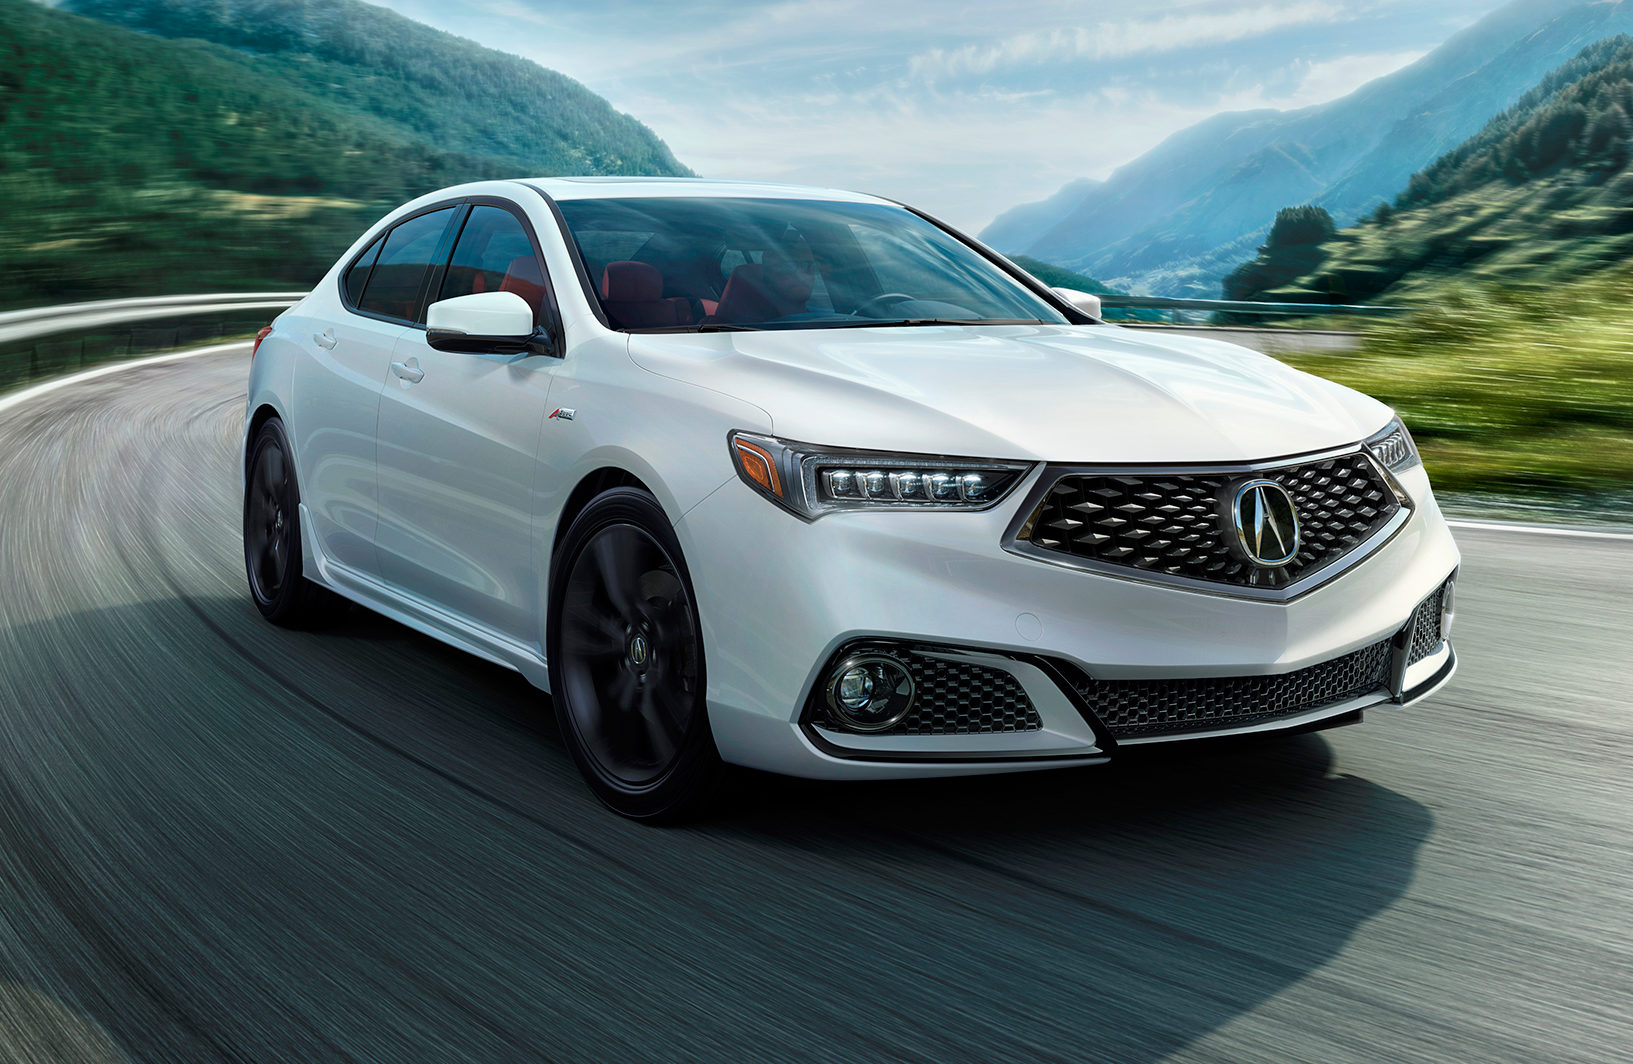 Acura TLX Review Specs Acura Of Stockton New Used Acuras - Acura tlx 2018 price